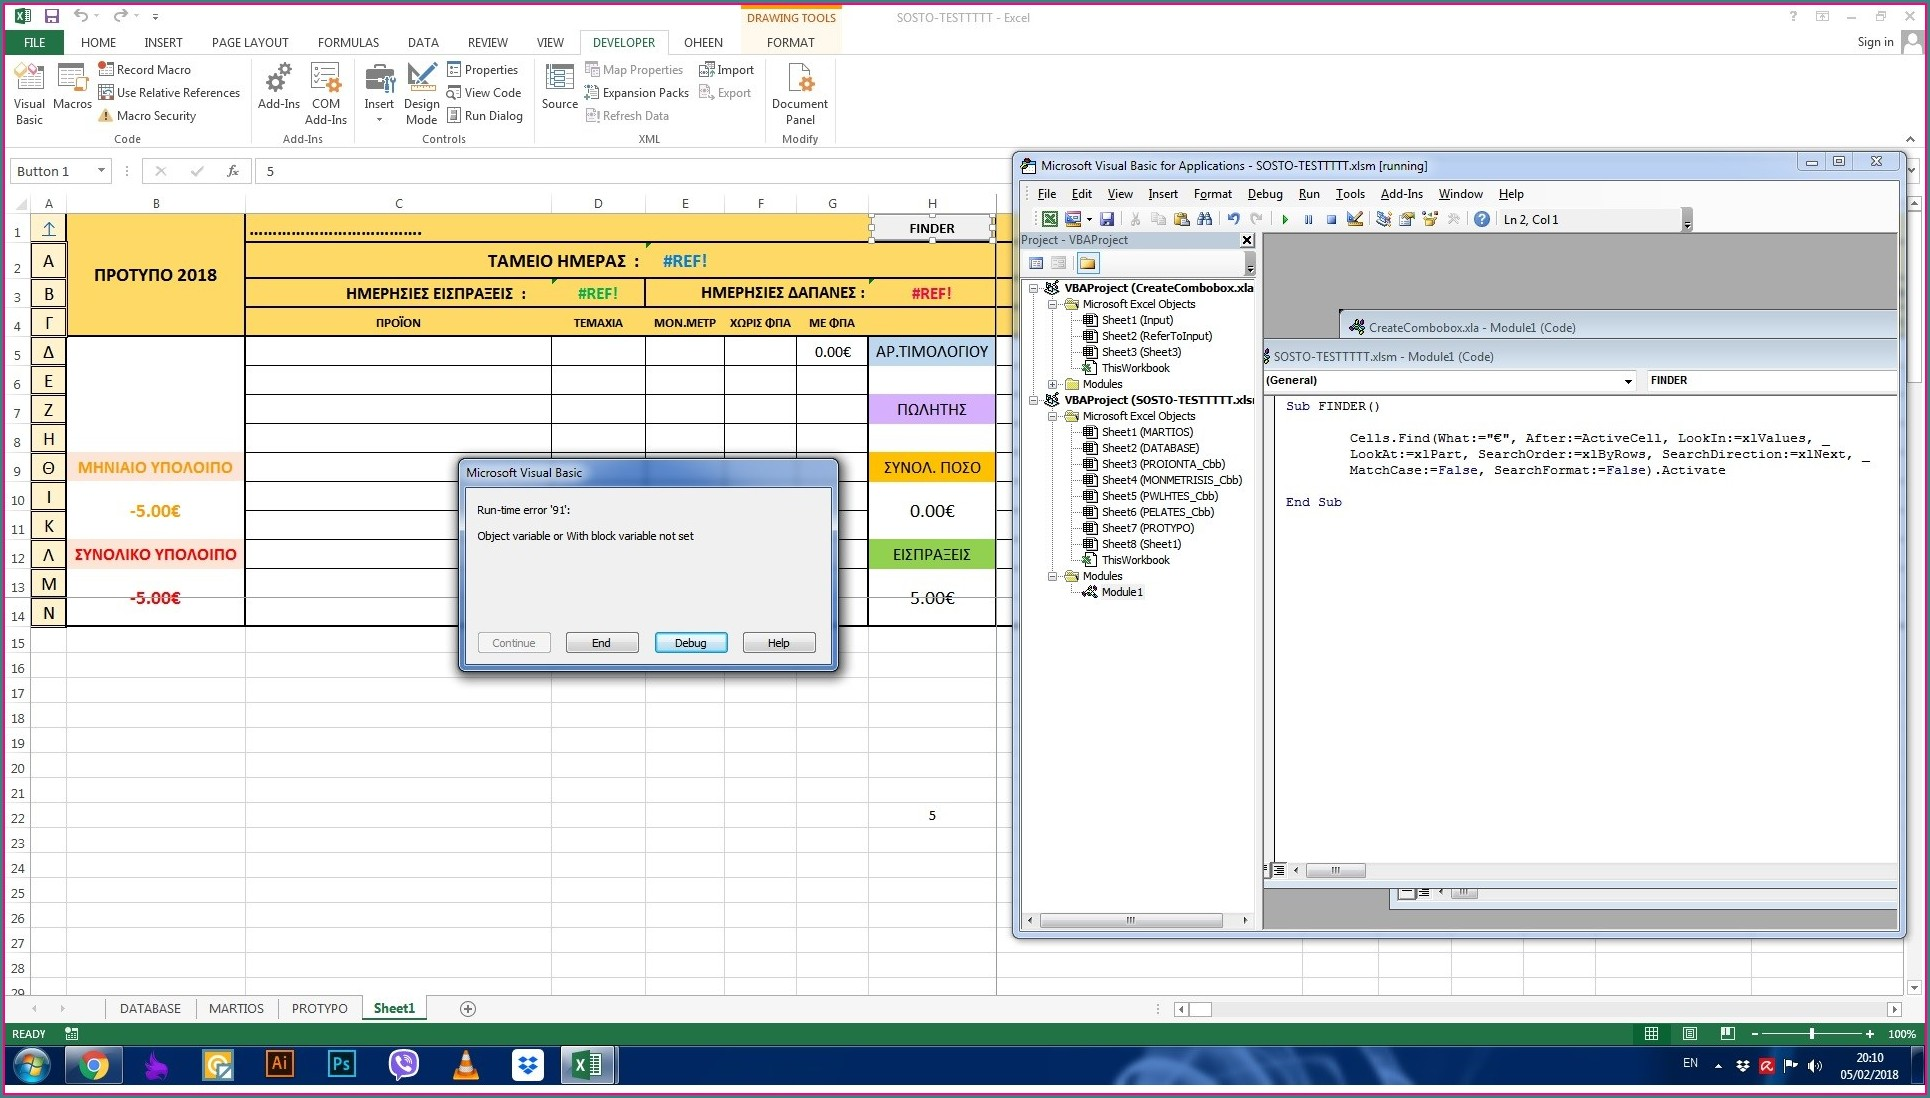 Excel Vba Thisworkbook Saved True